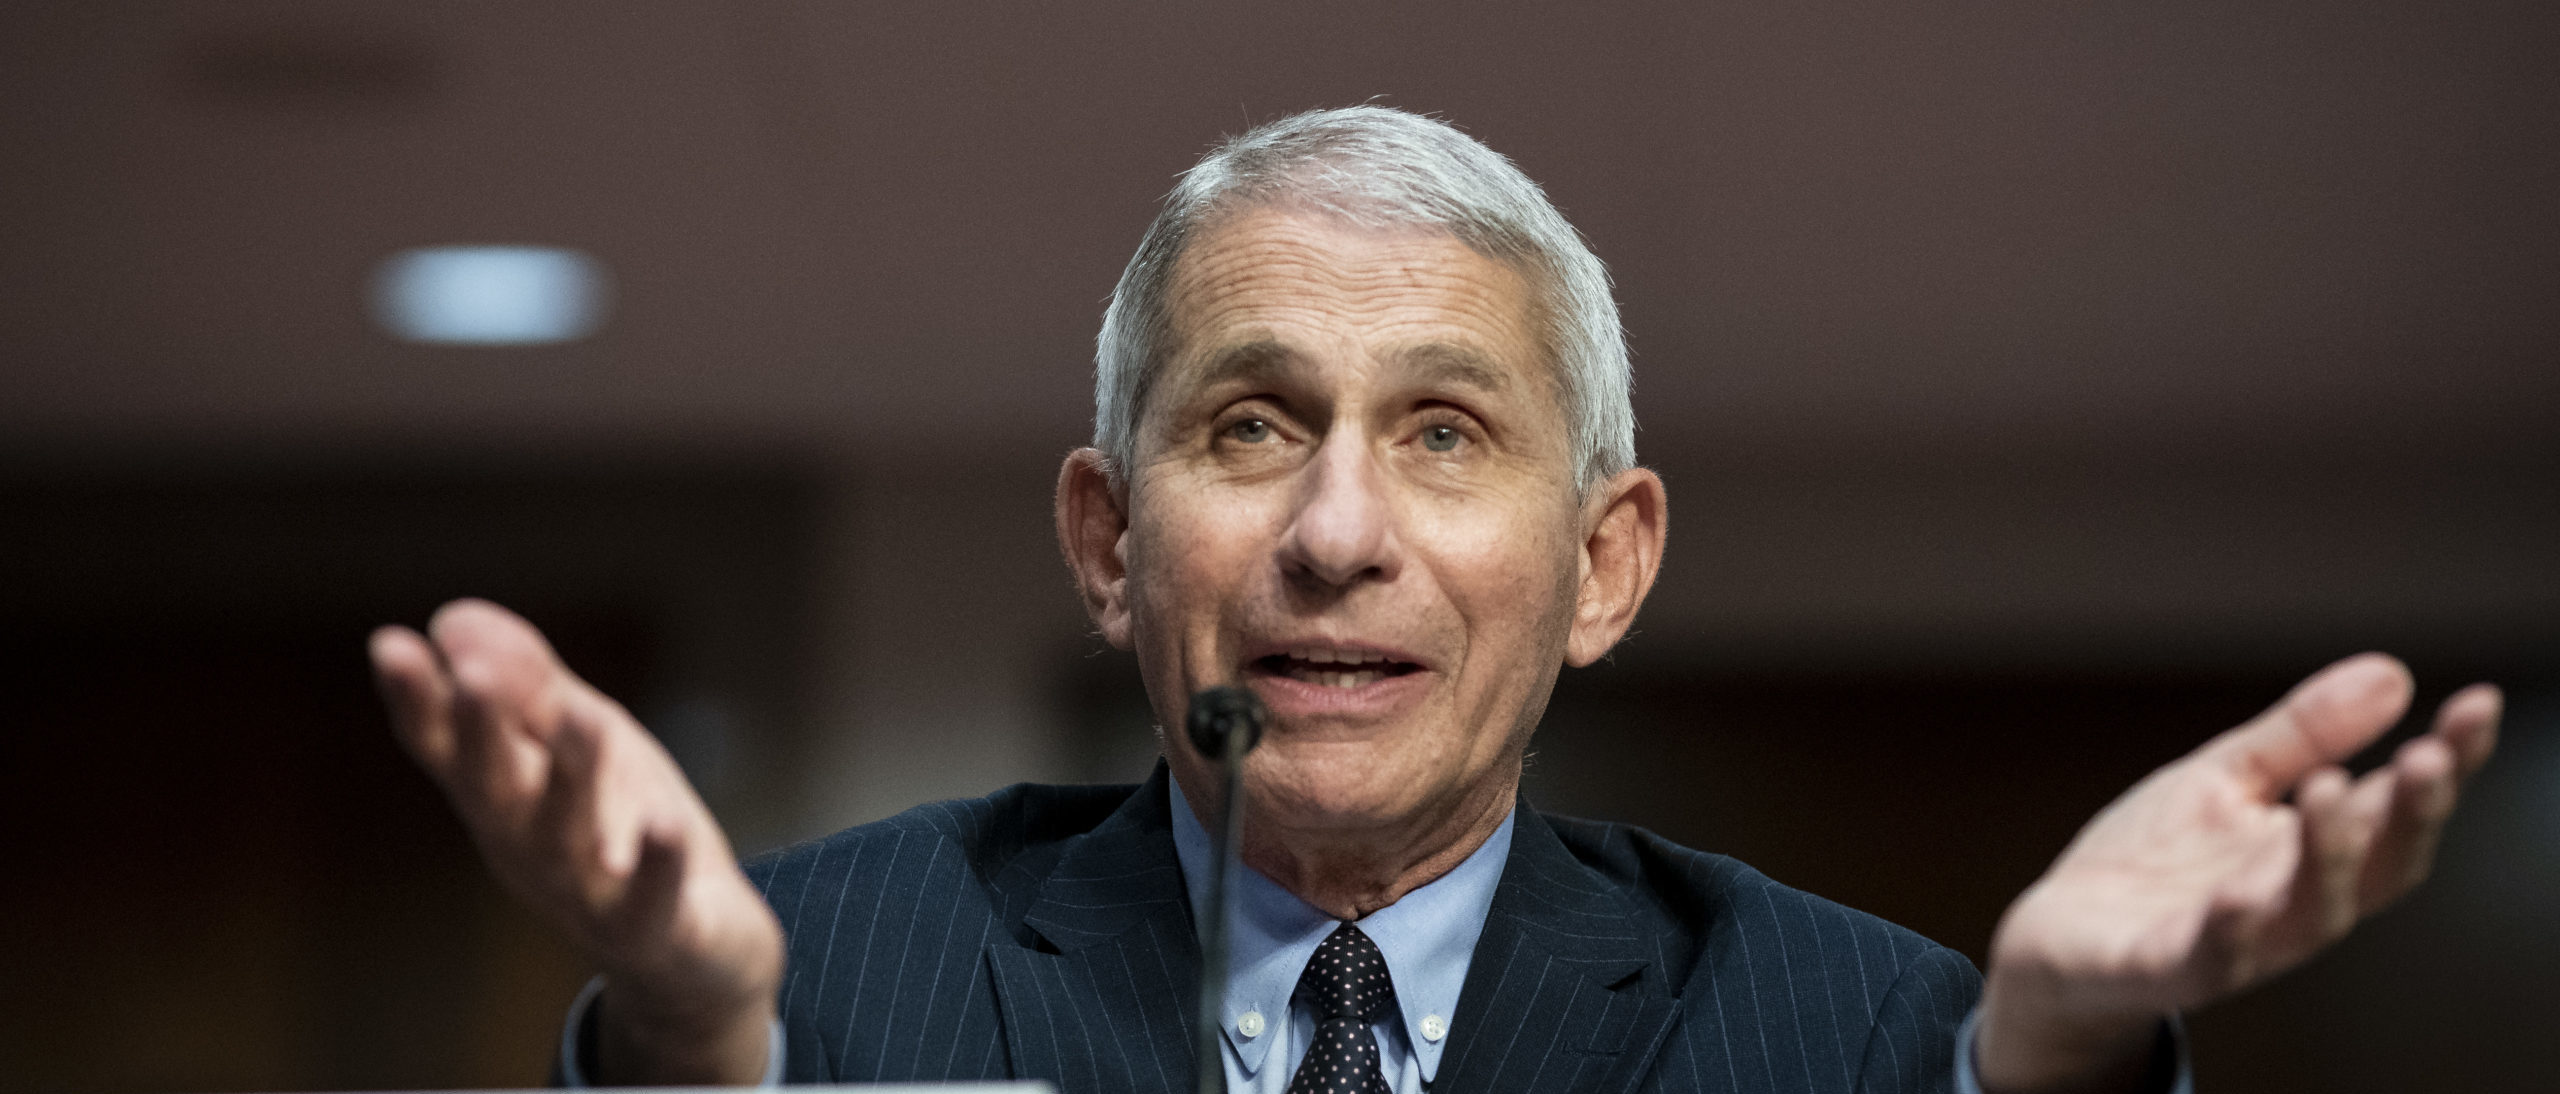 Dr. Fauci Was Among Highest-Paid Federal Officials In 2019 — He Banked More Than President Trump's $400,000